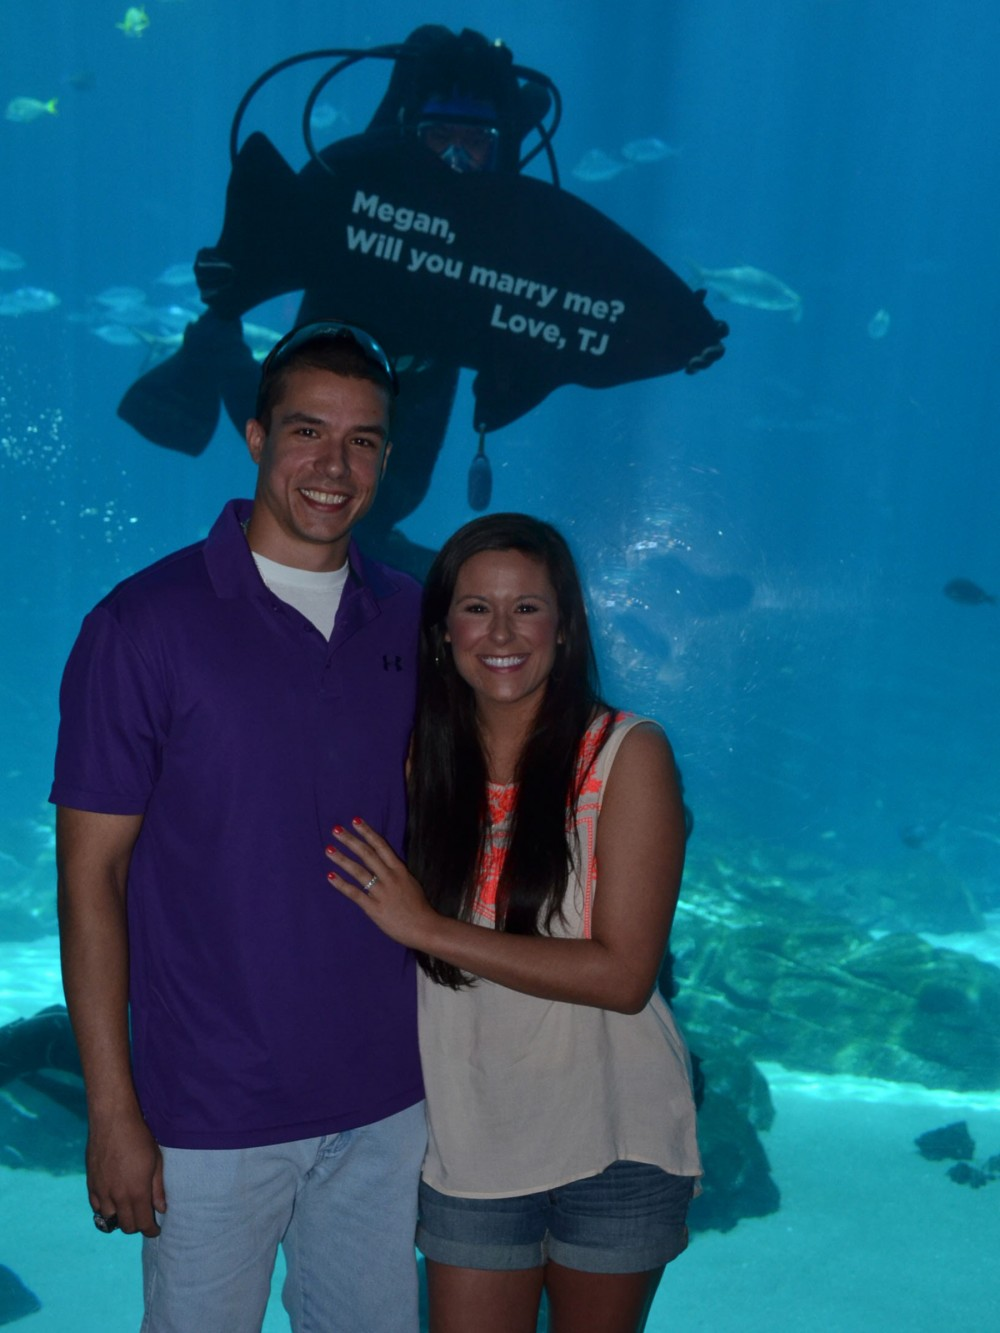 Image 4 of Megan and TJ's Georgia Aquarium Proposal